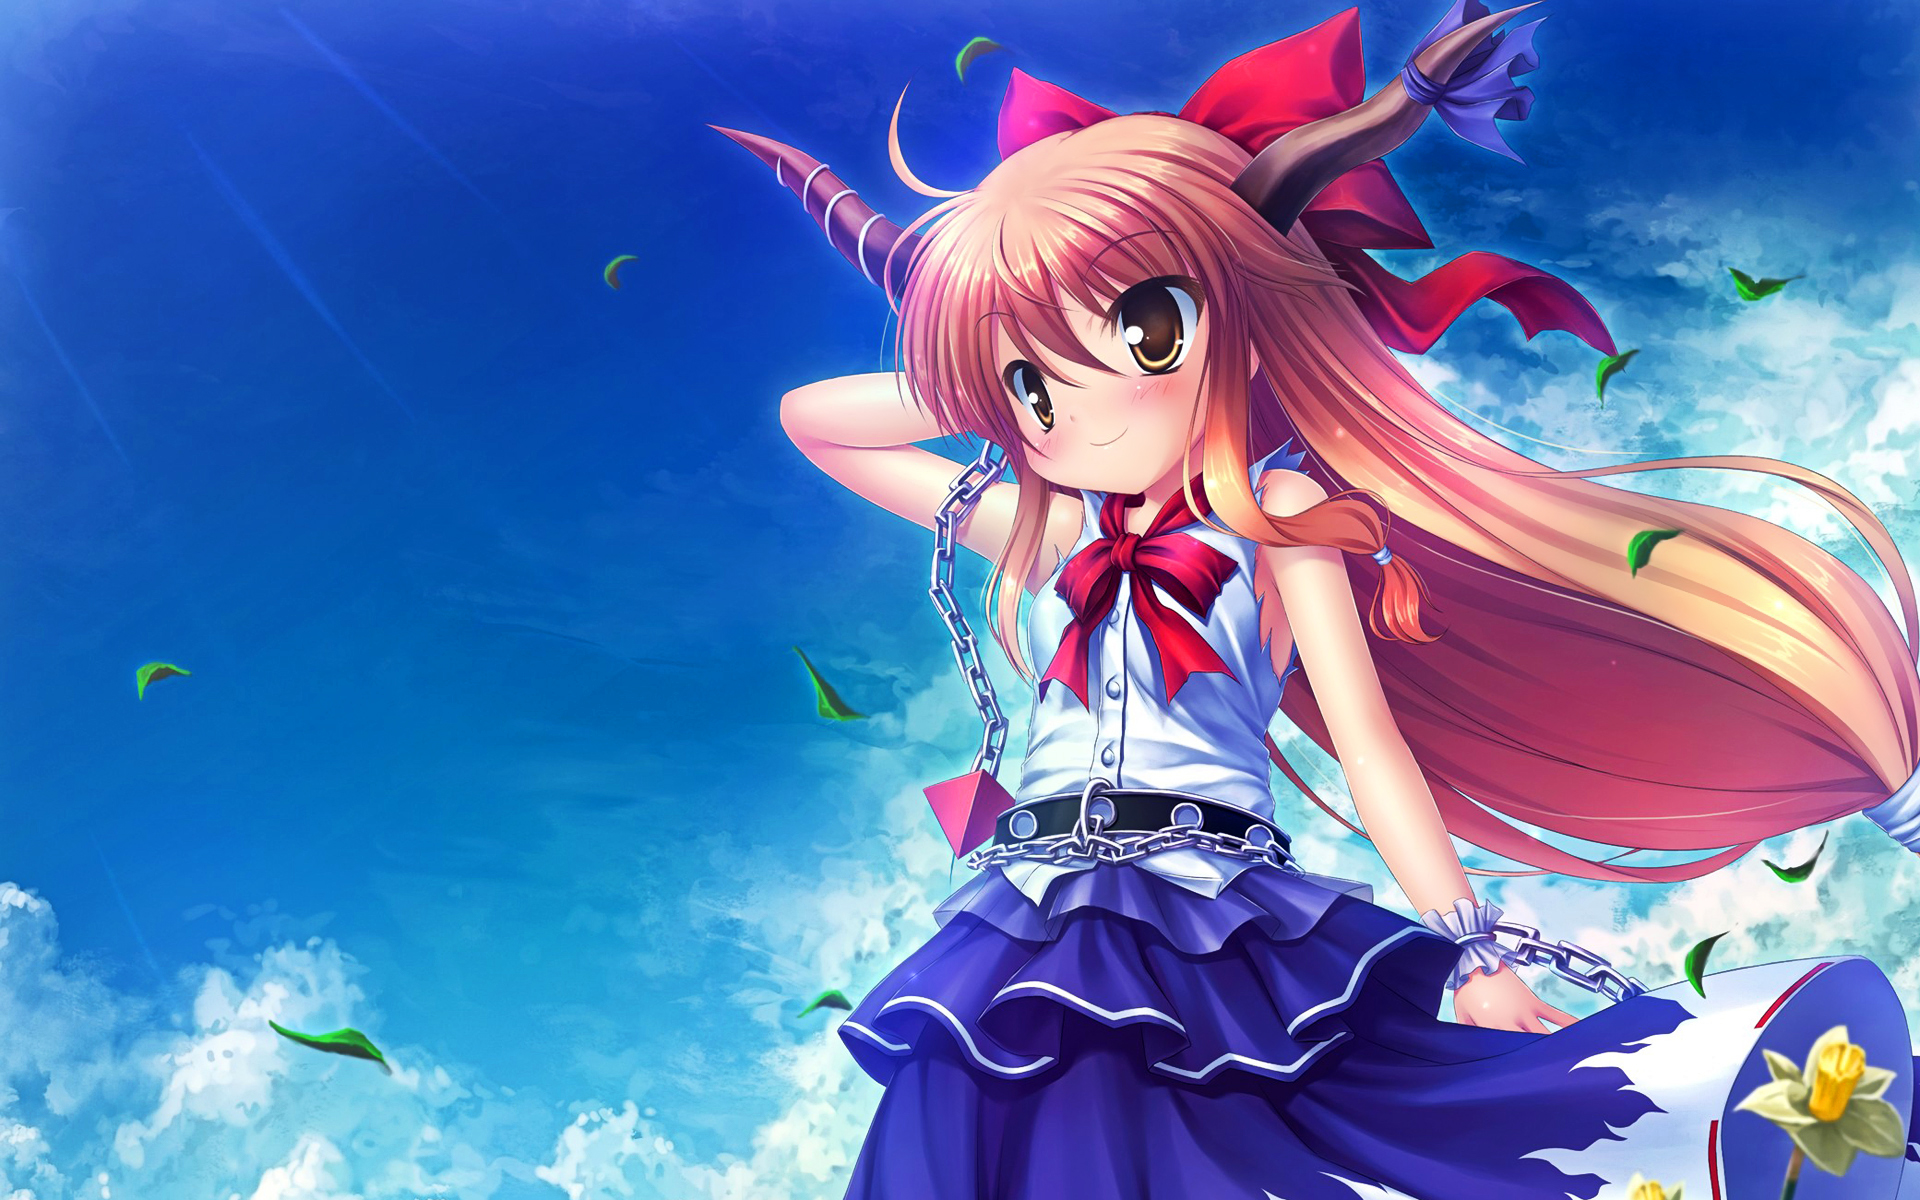 Hd Wallpapers Anime Cute HD Wallpapers   ImgHD Browse and 1920x1200